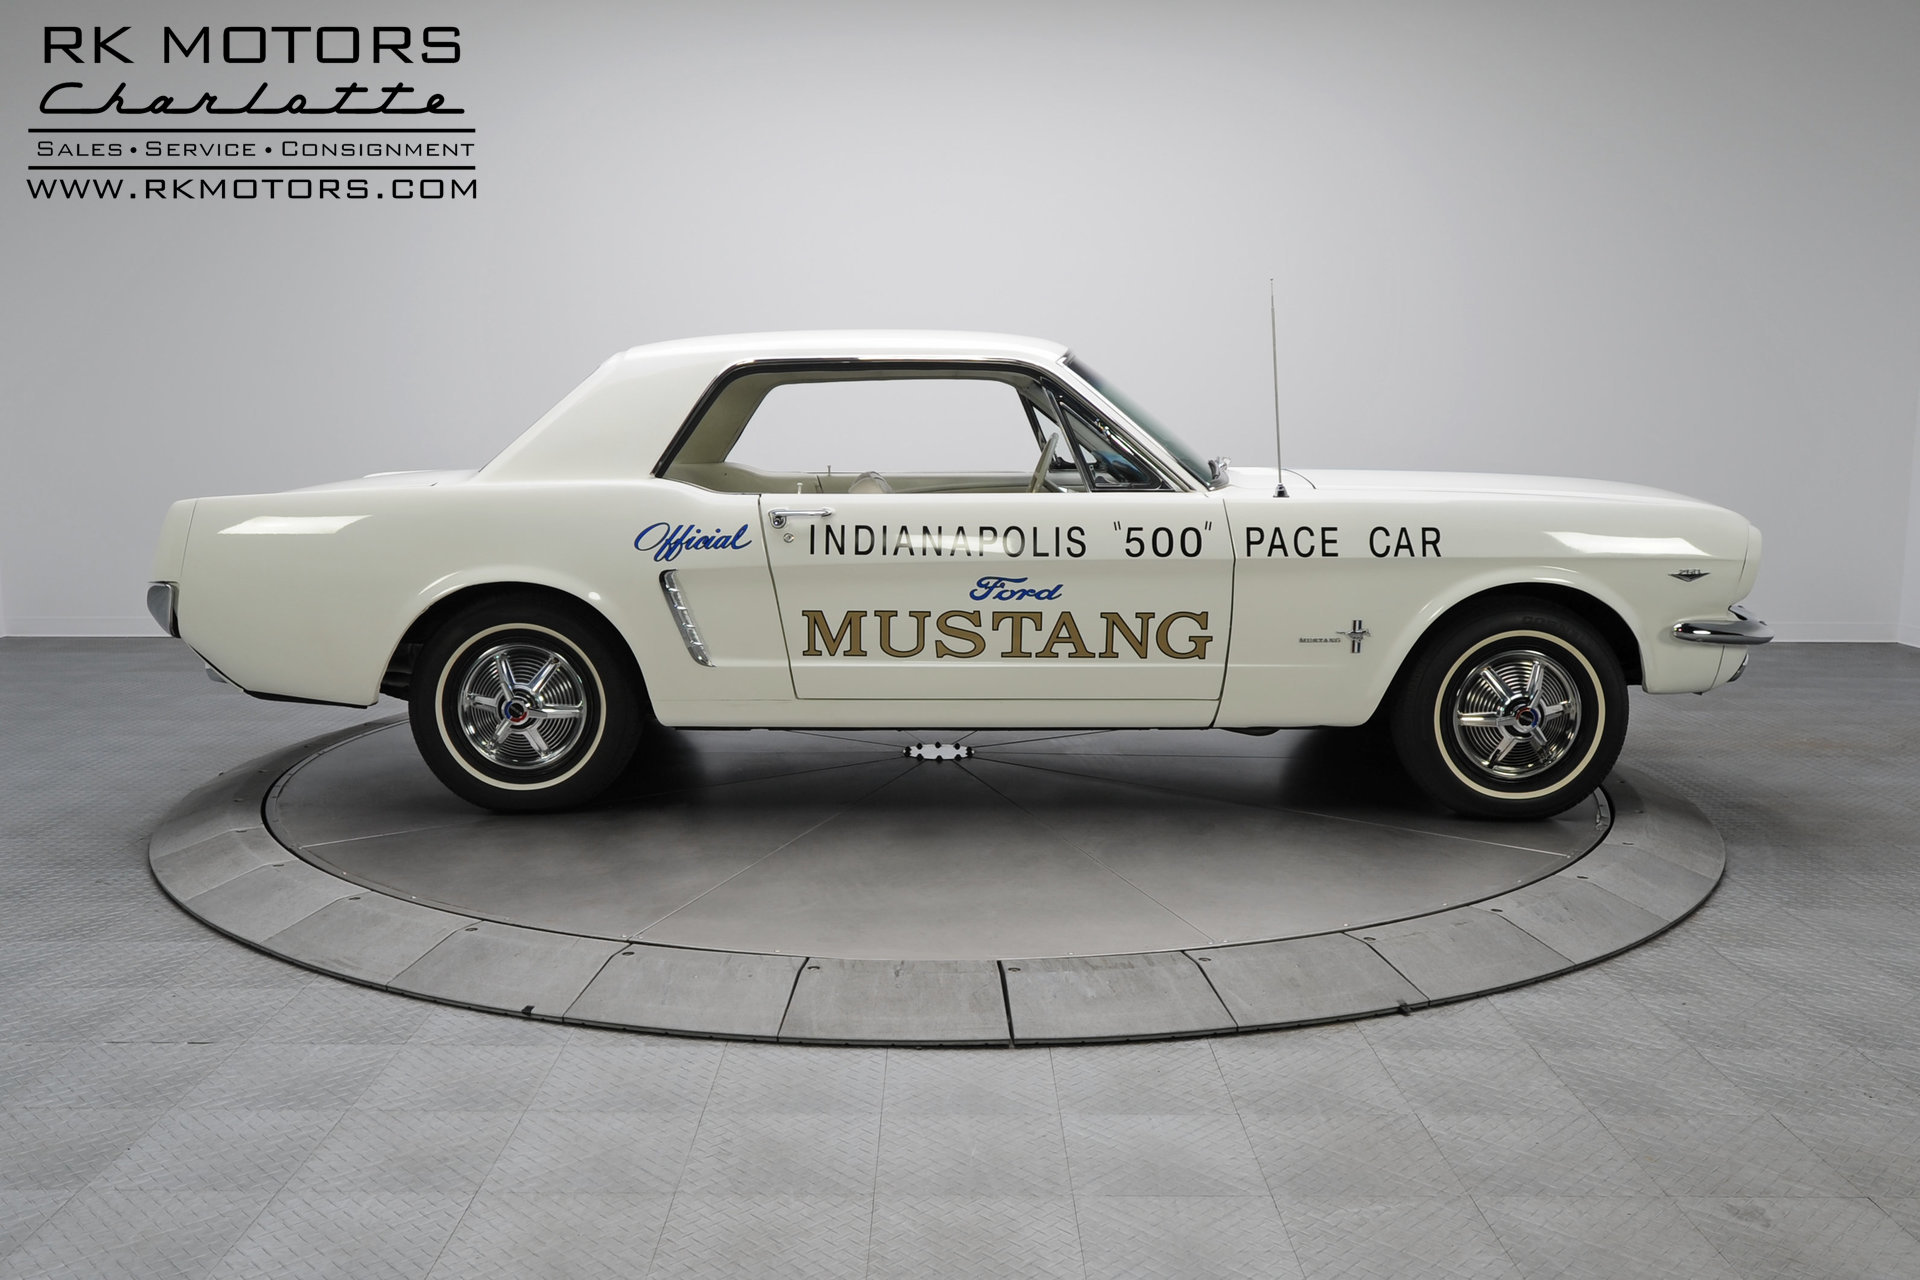 133228 1964 Ford Mustang Rk Motors Classic Cars For Sale Paint Colors